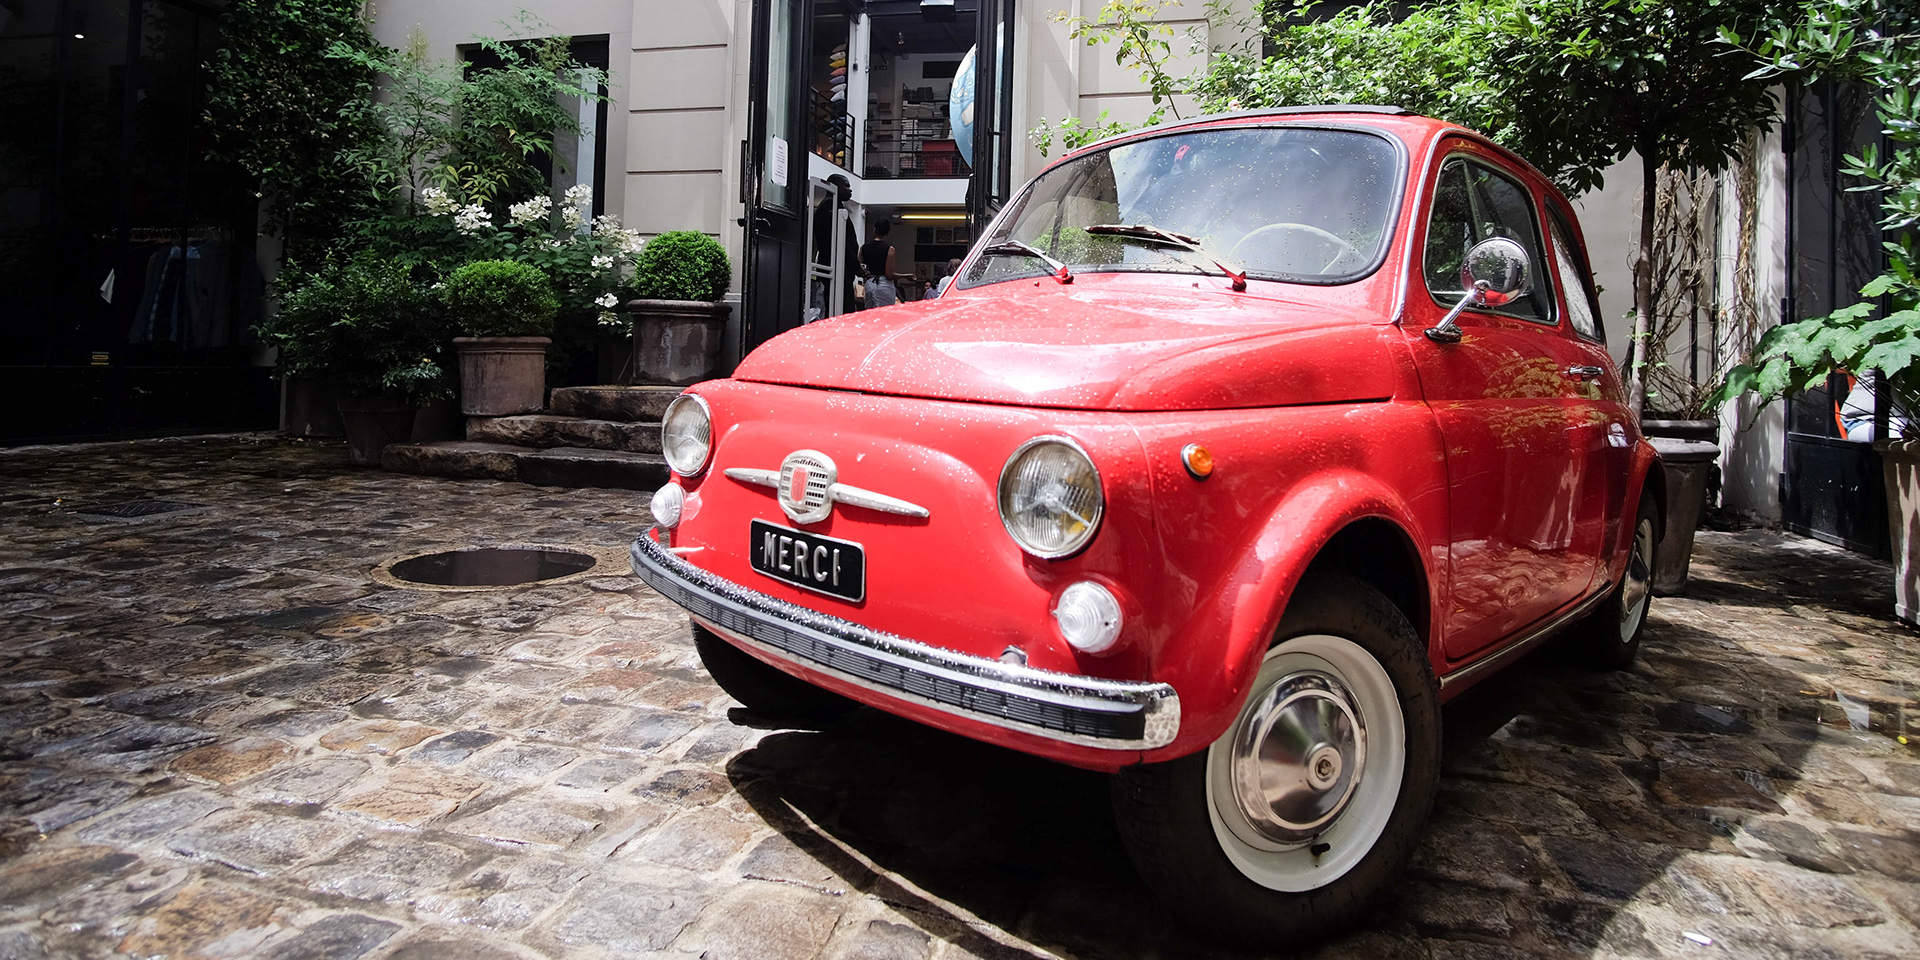 The iconic red Fiat at the entrance to Merci (photo by  Tony )